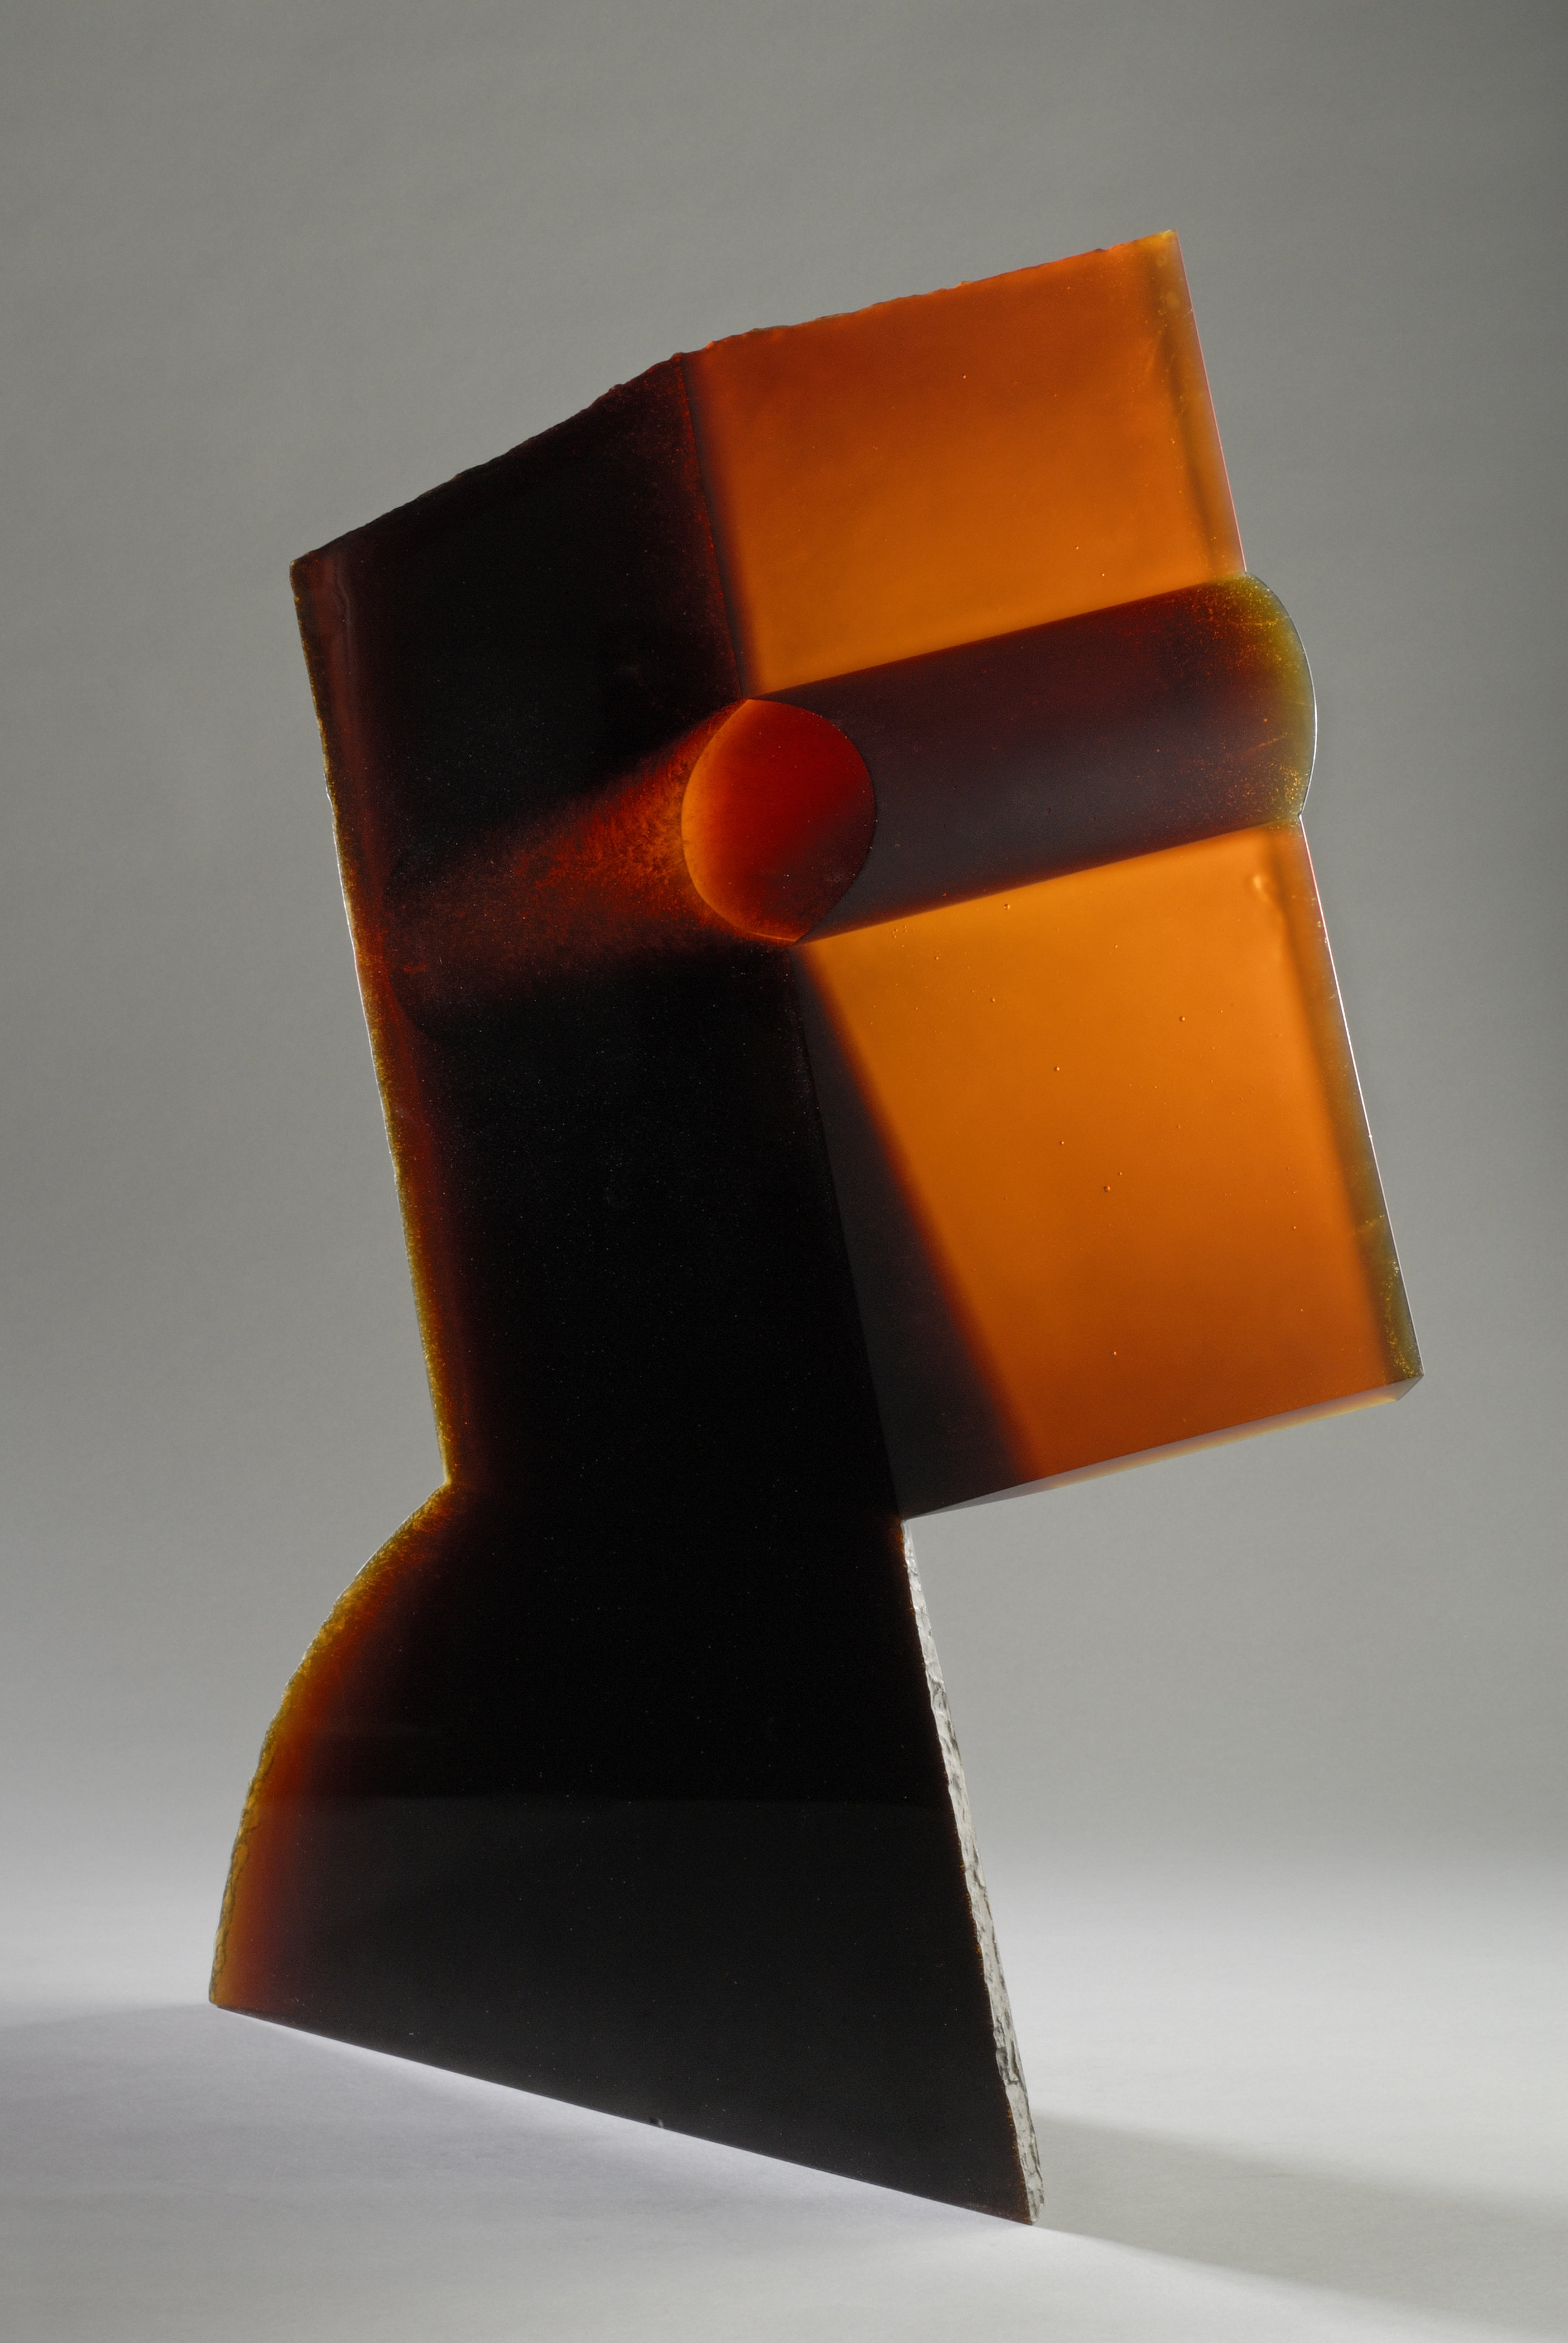 Jaroslava Brychtová (Czech, born 1924) and Stanislav Libenský (Czech, 1921 - 2002). The Second Queen,  1991-1992.Mold-melted glass, cut and ground;32 1/8 x 25 1/2 in. Collection of Museum of Glass, Tacoma, Washington, gift of Lisa and Dudley B. Anderson.Photo by Duncan Price.